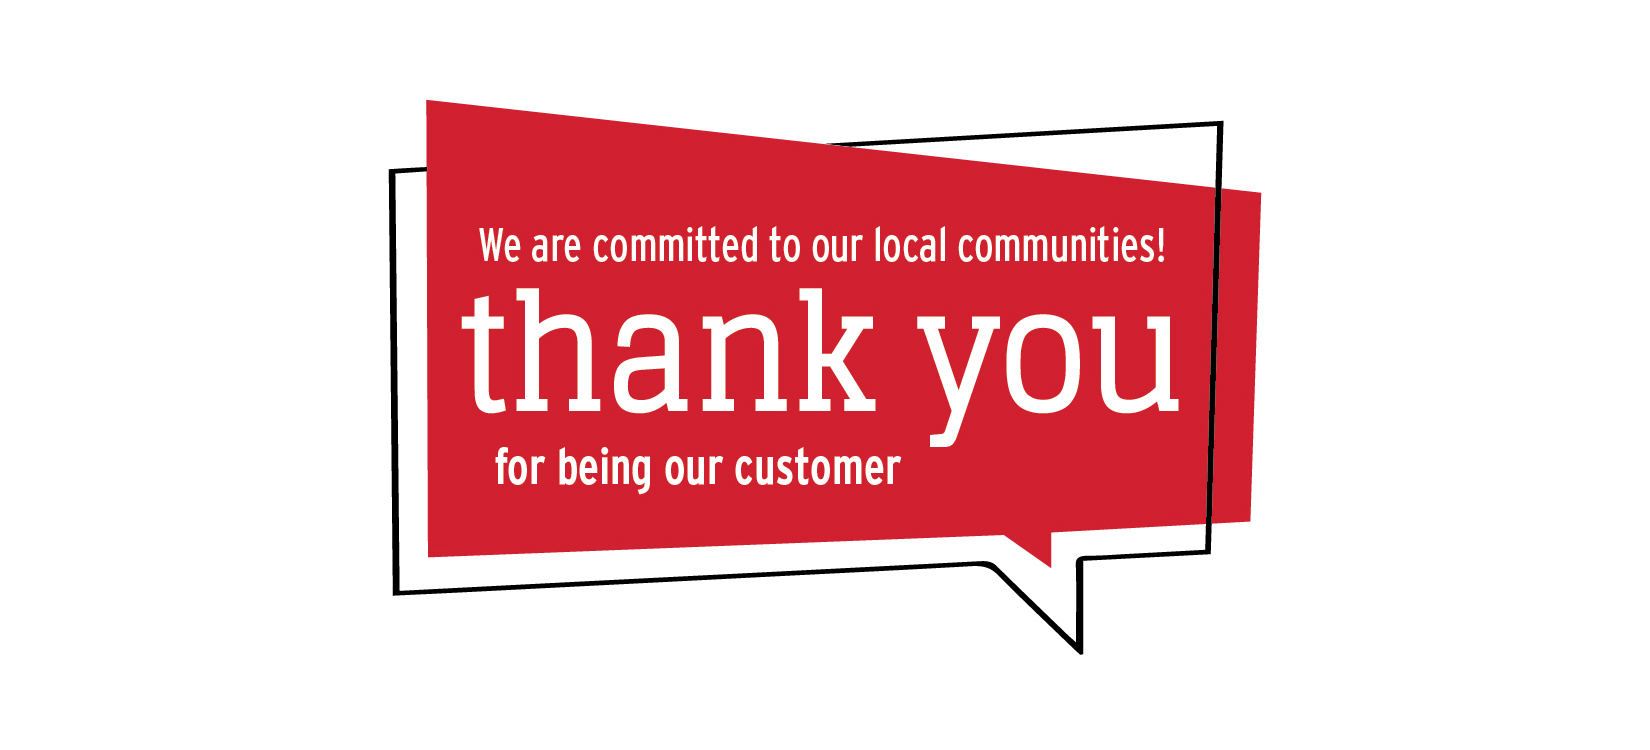 We are committed to our local communities! Thank you for being our customer.